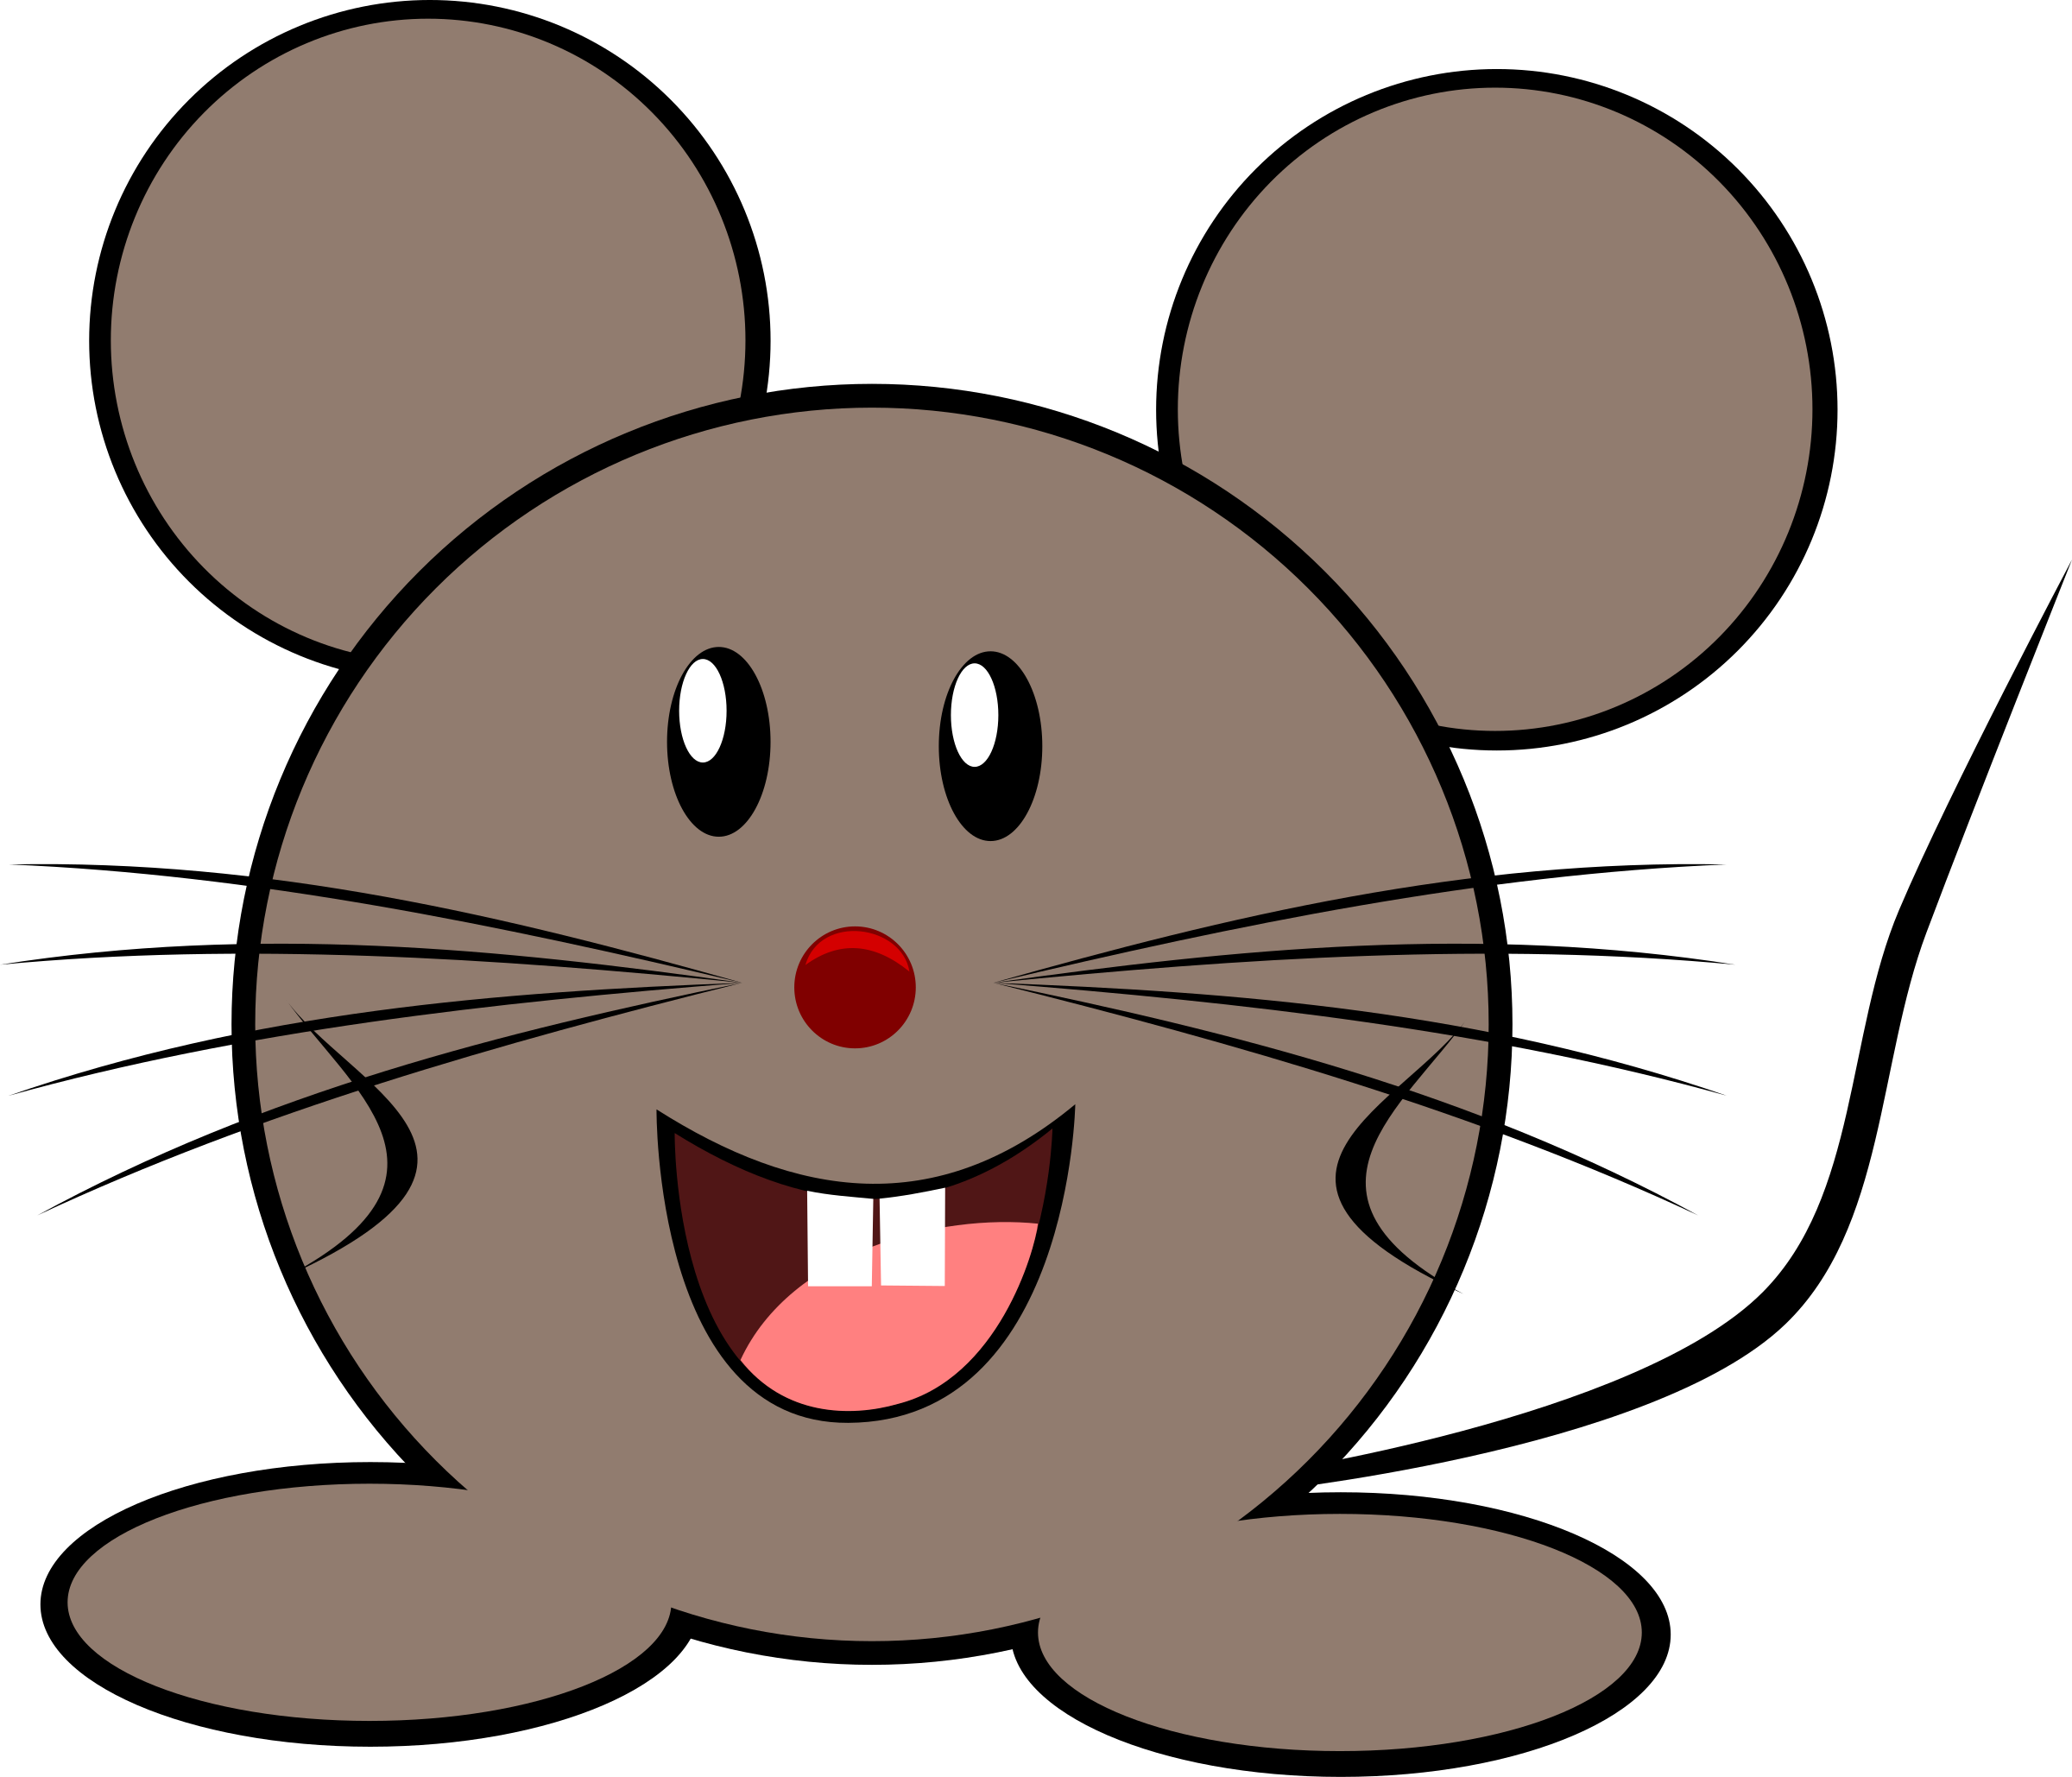 Mouse Vector Clipart image - Free stock photo - Public ...